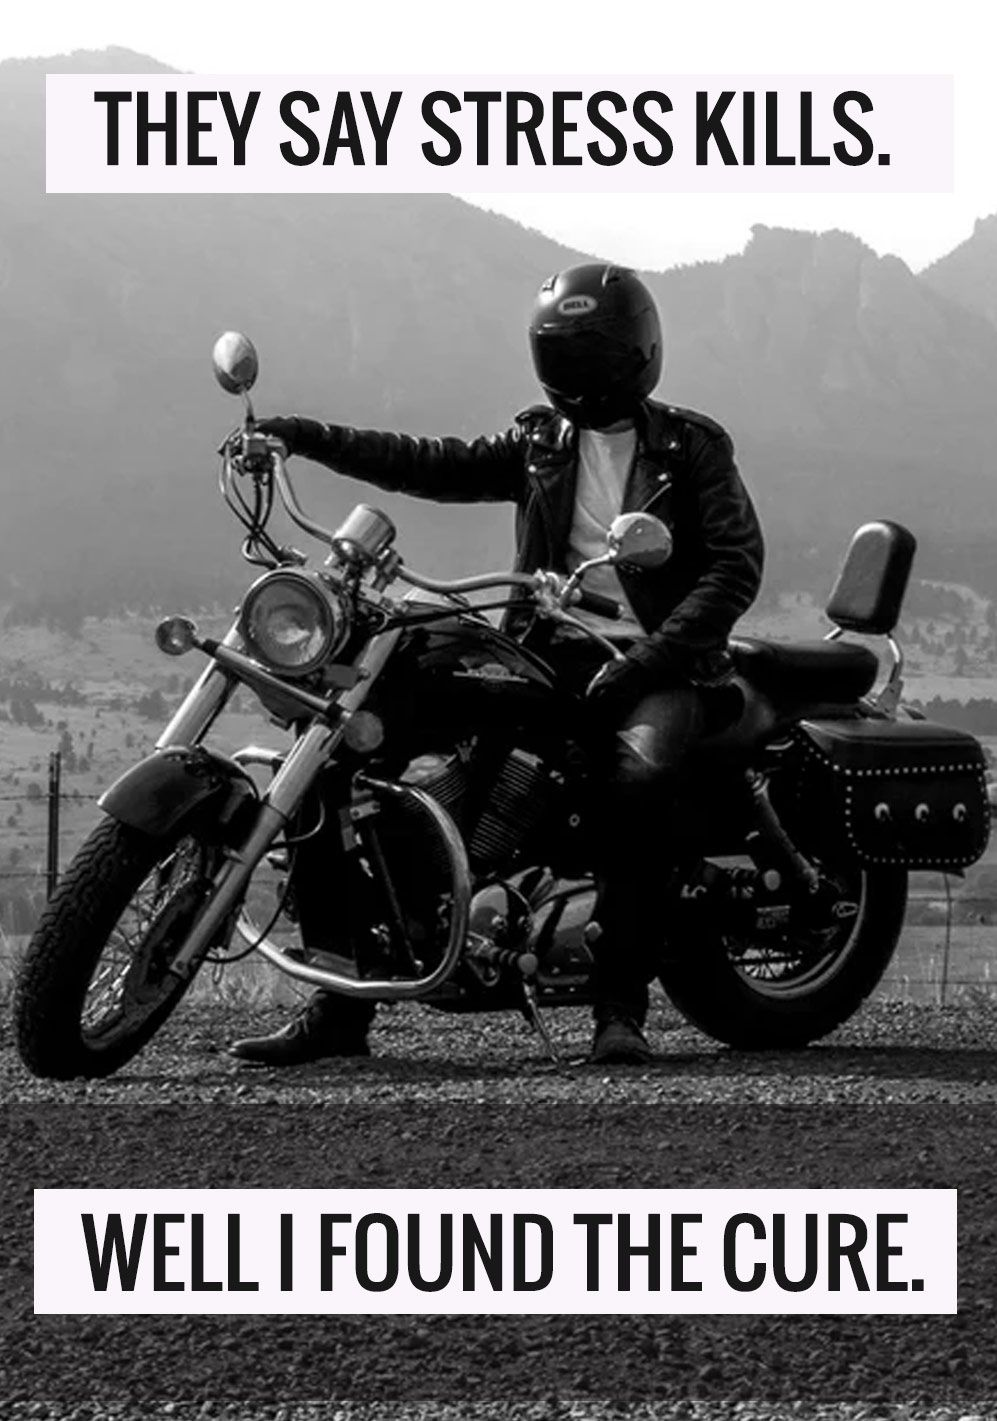 Motorcycle Biker Quotes Collection With Images Bike Riding